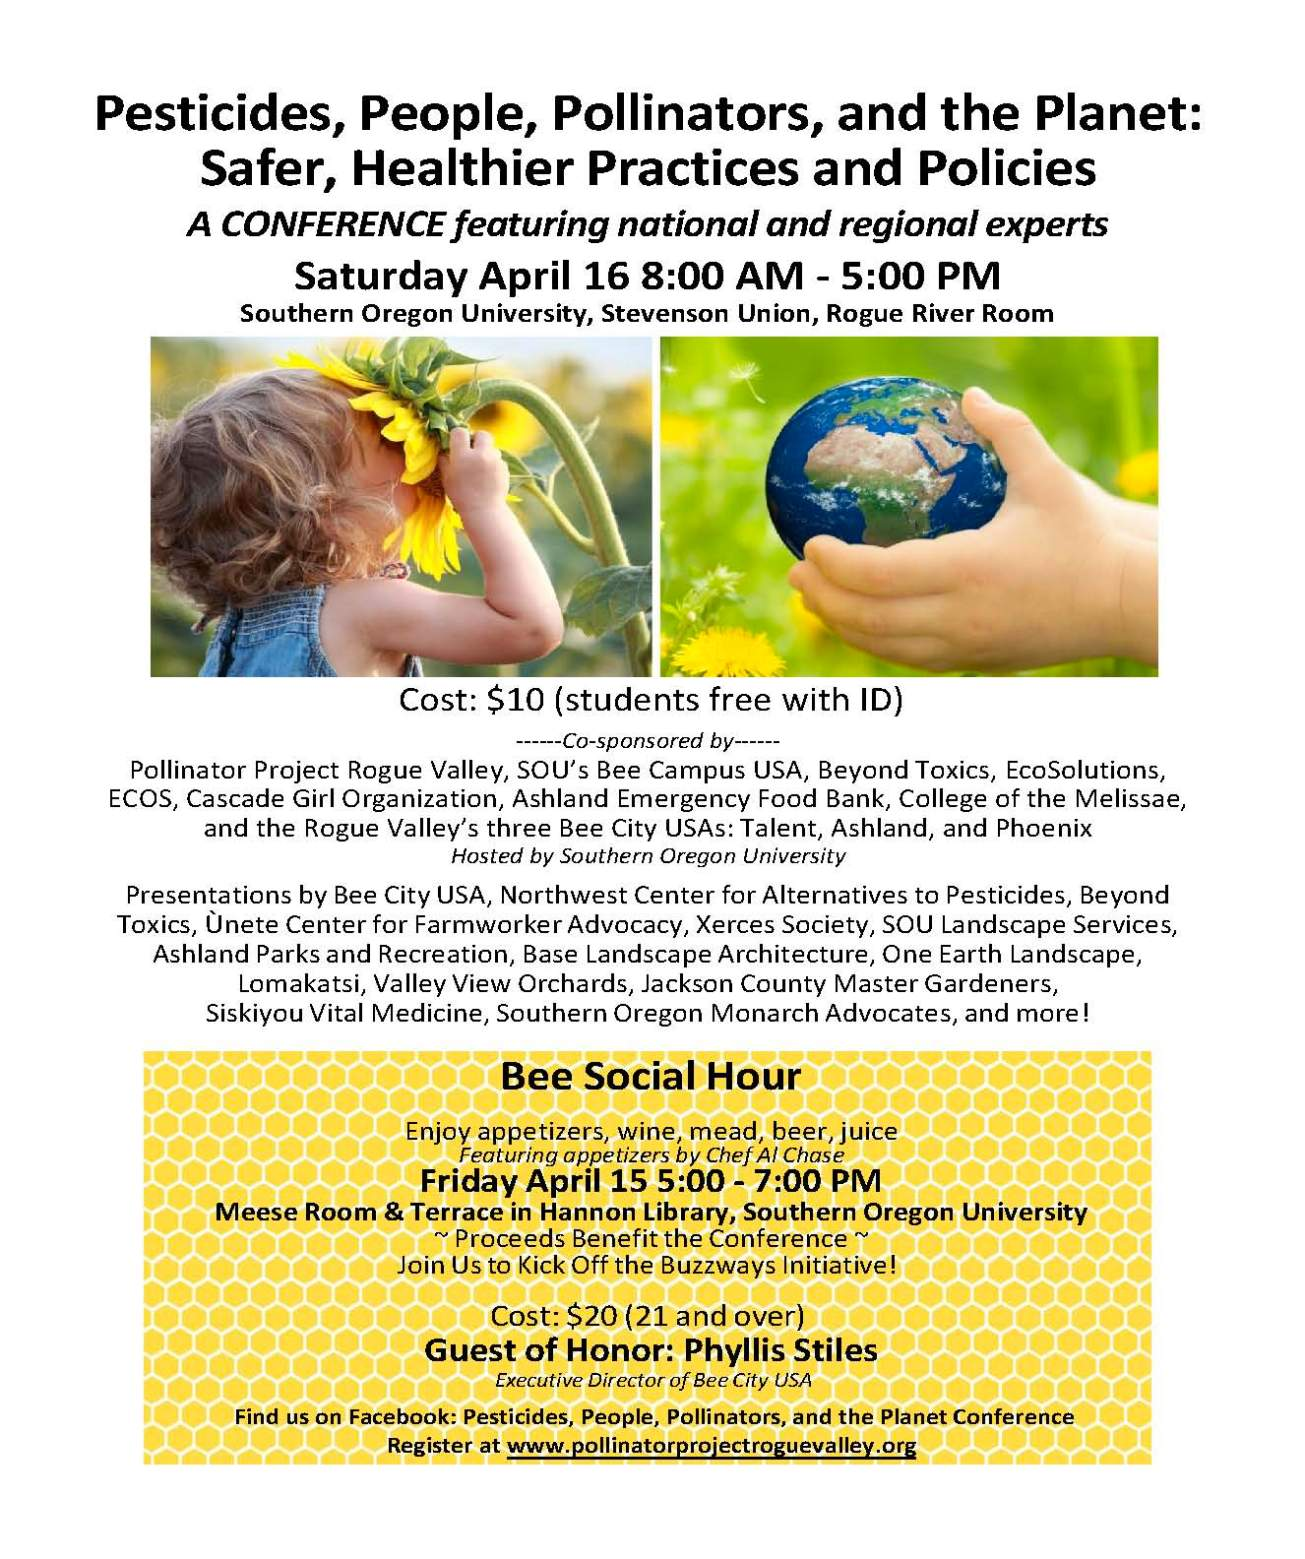 PPPP Conference Flyer